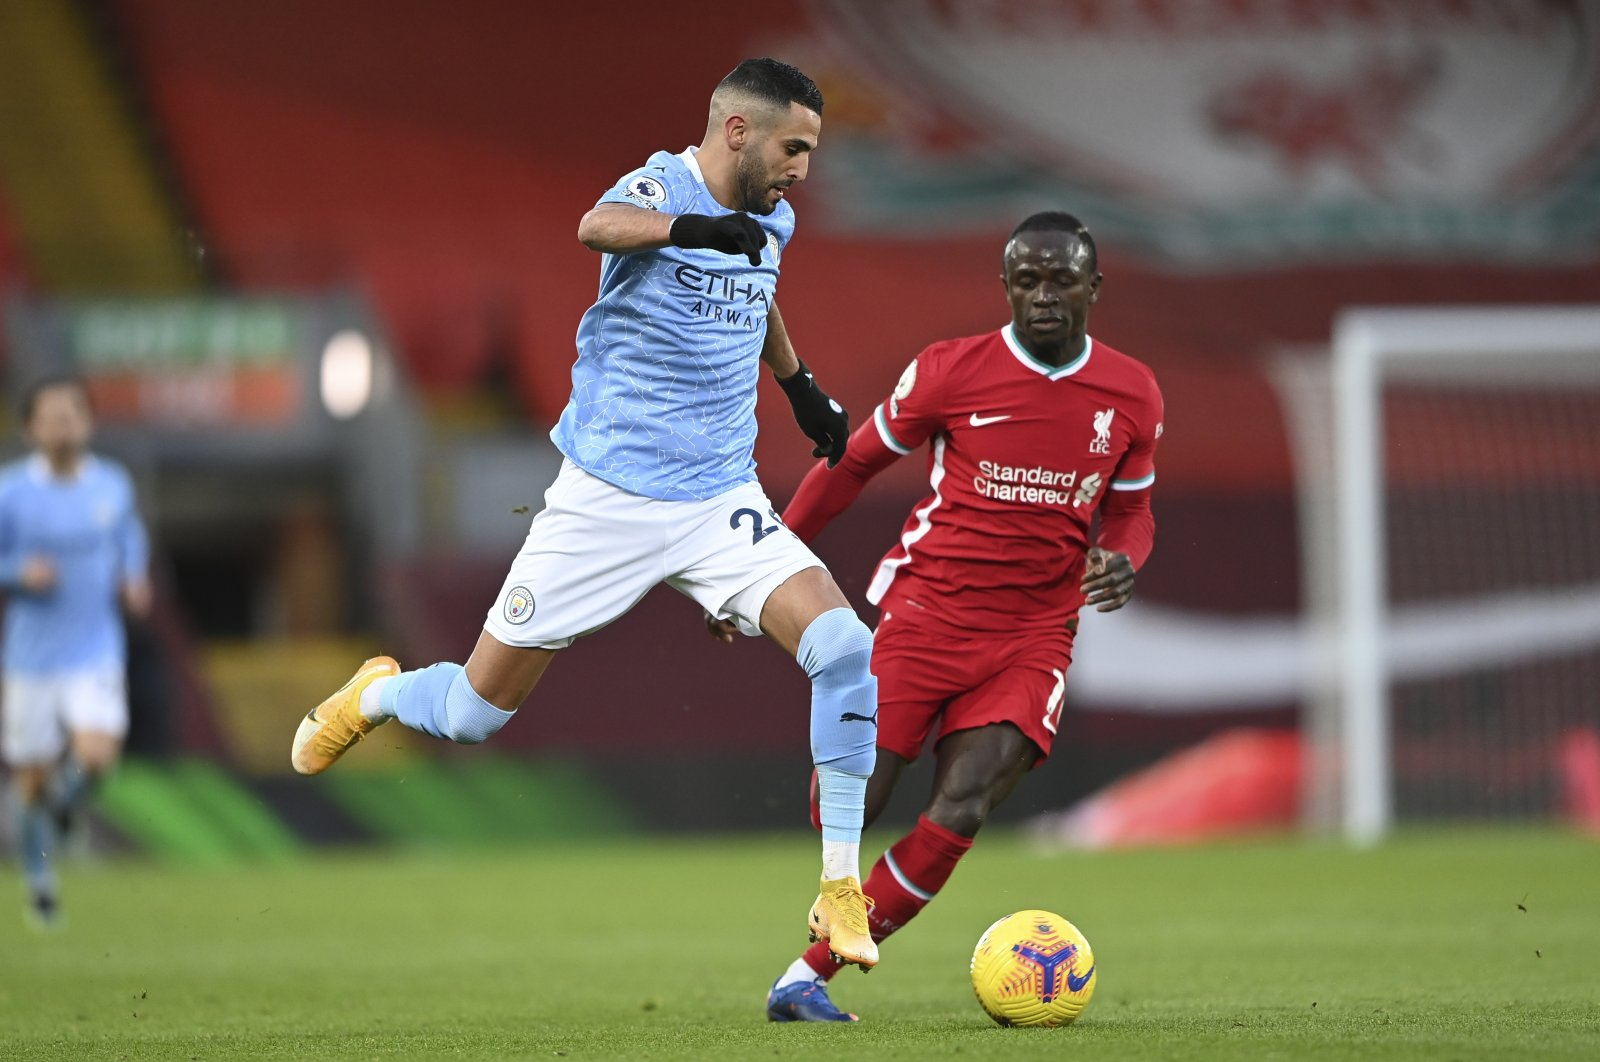 Manchester City's Riyad Mahrez (L) drives the ball past Liverpool's Sadio Mane in a Premier League match at the Anfield, Liverpool, England, Feb. 7, 2021. (AP Photo)